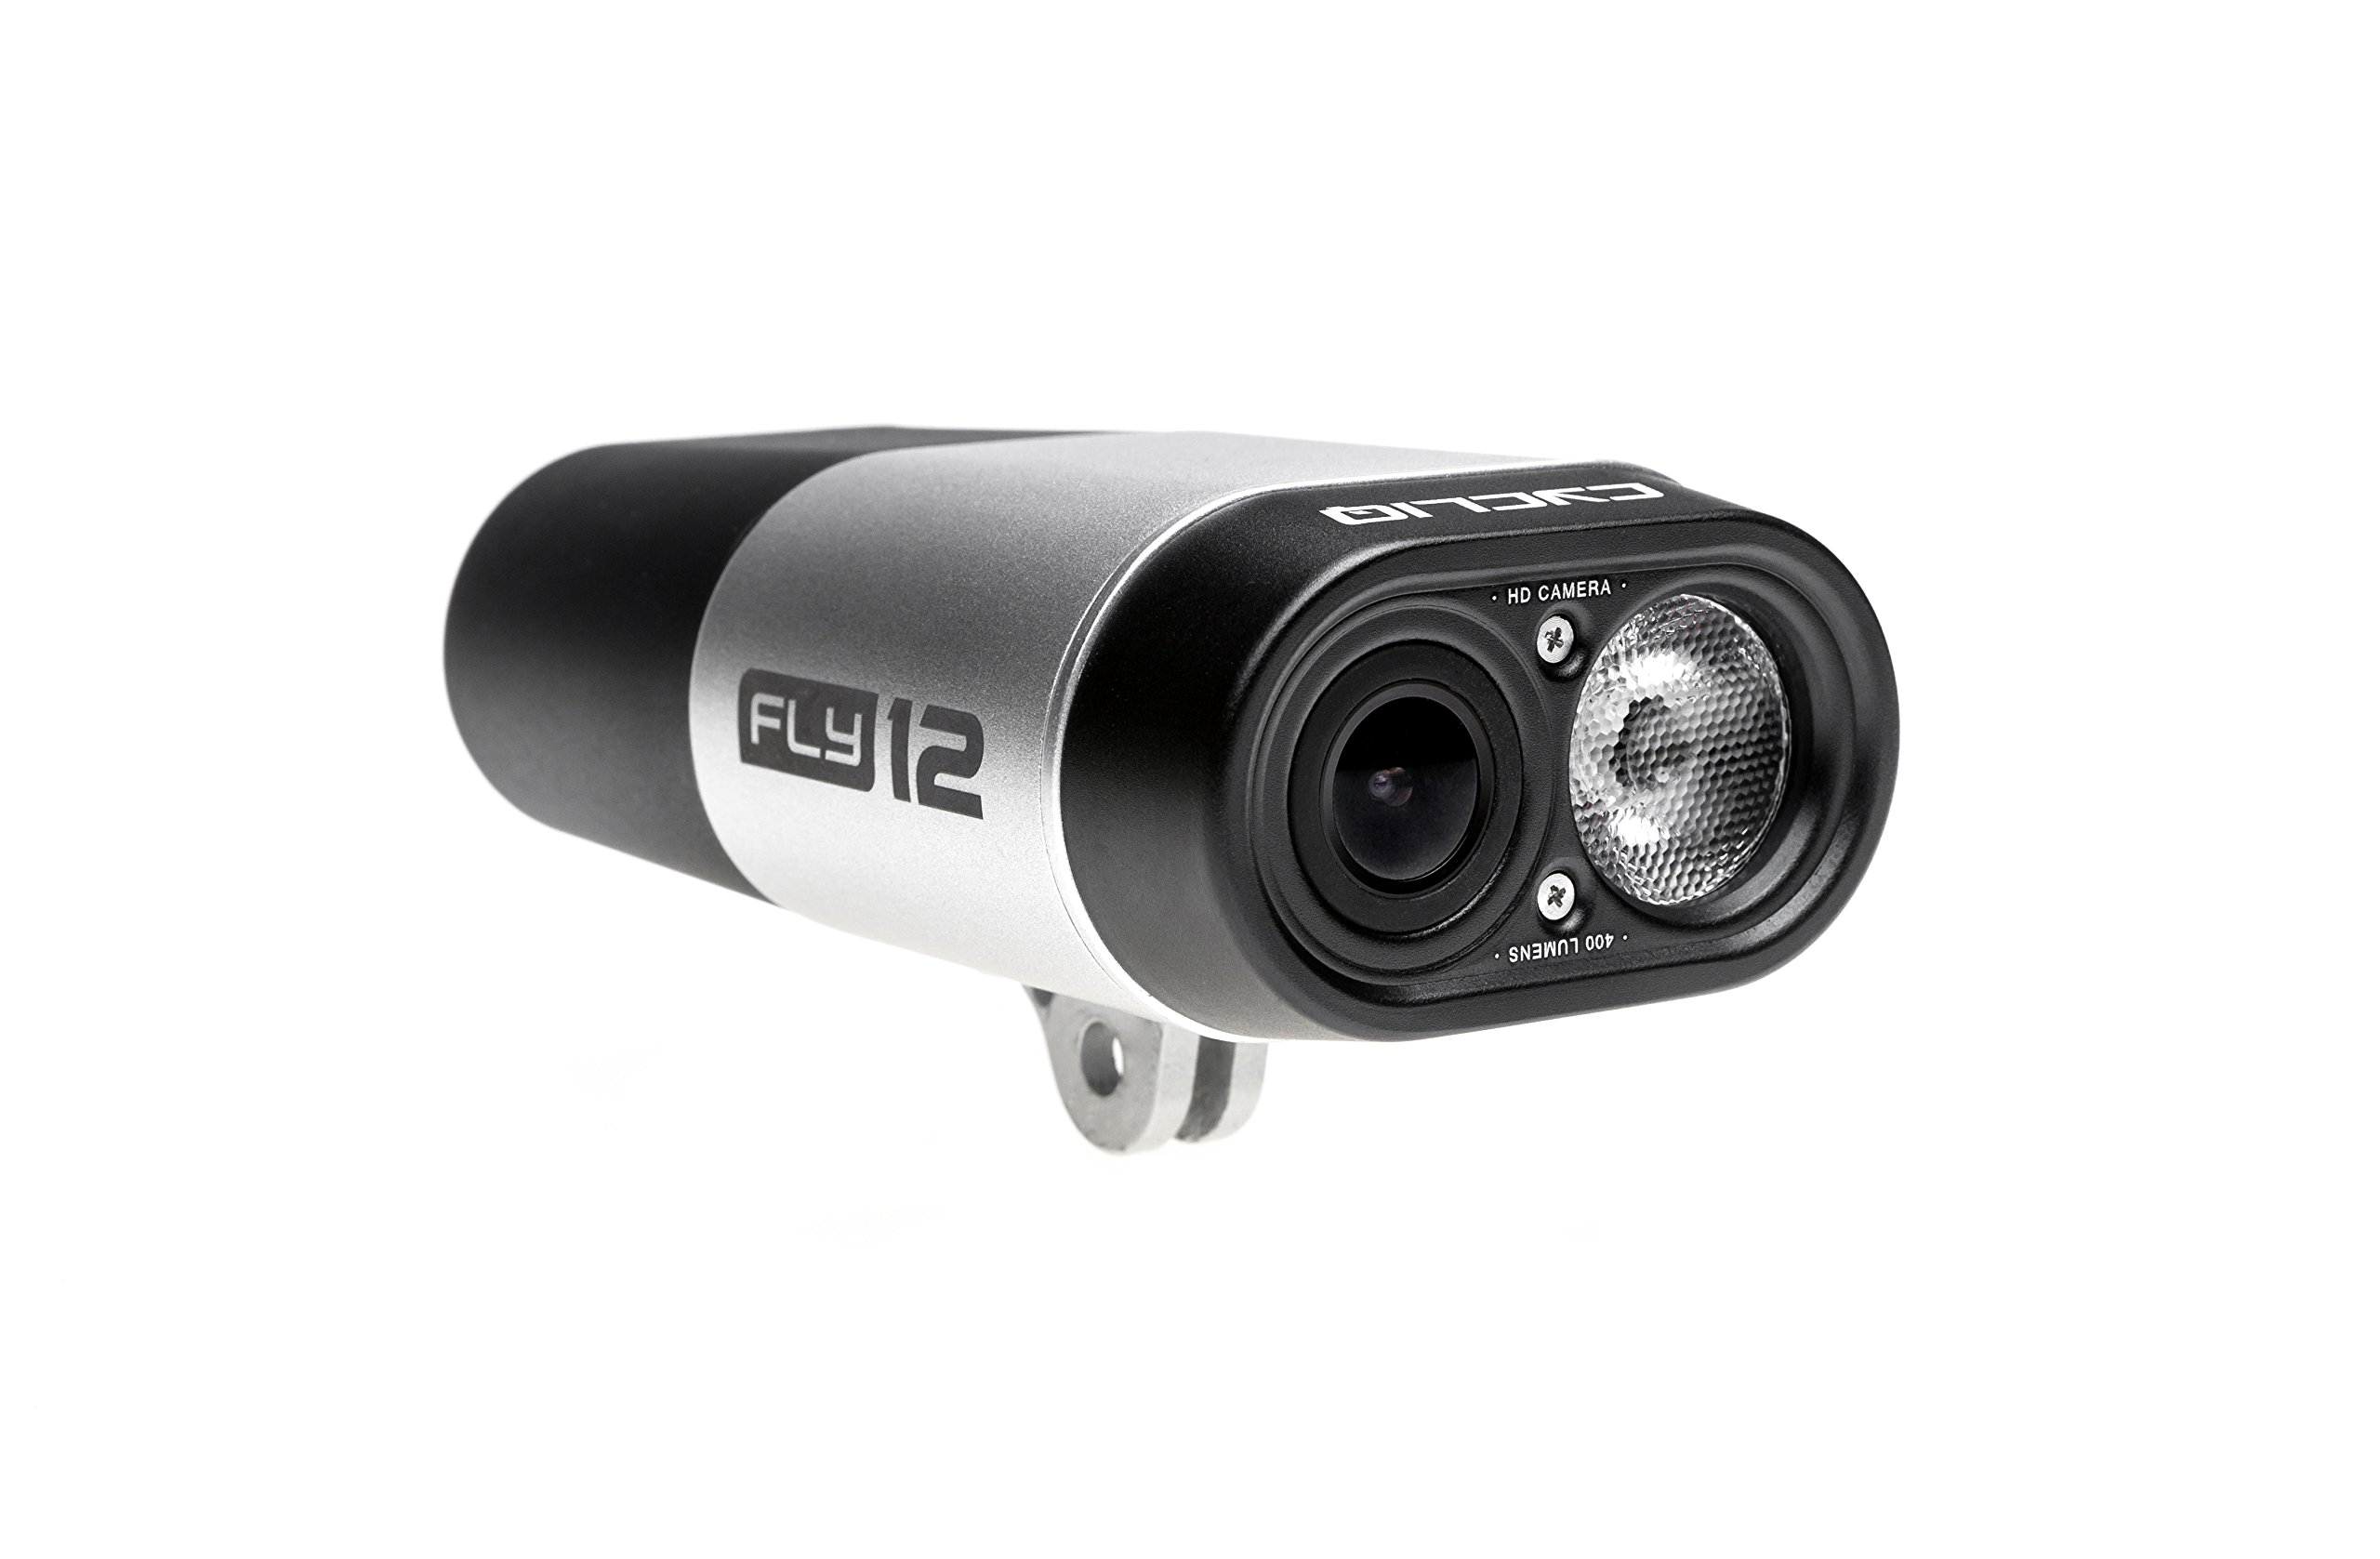 Fly12 Full HD Bike Camera and 400 Lumen Bicycle light by Cycliq (Image #1)